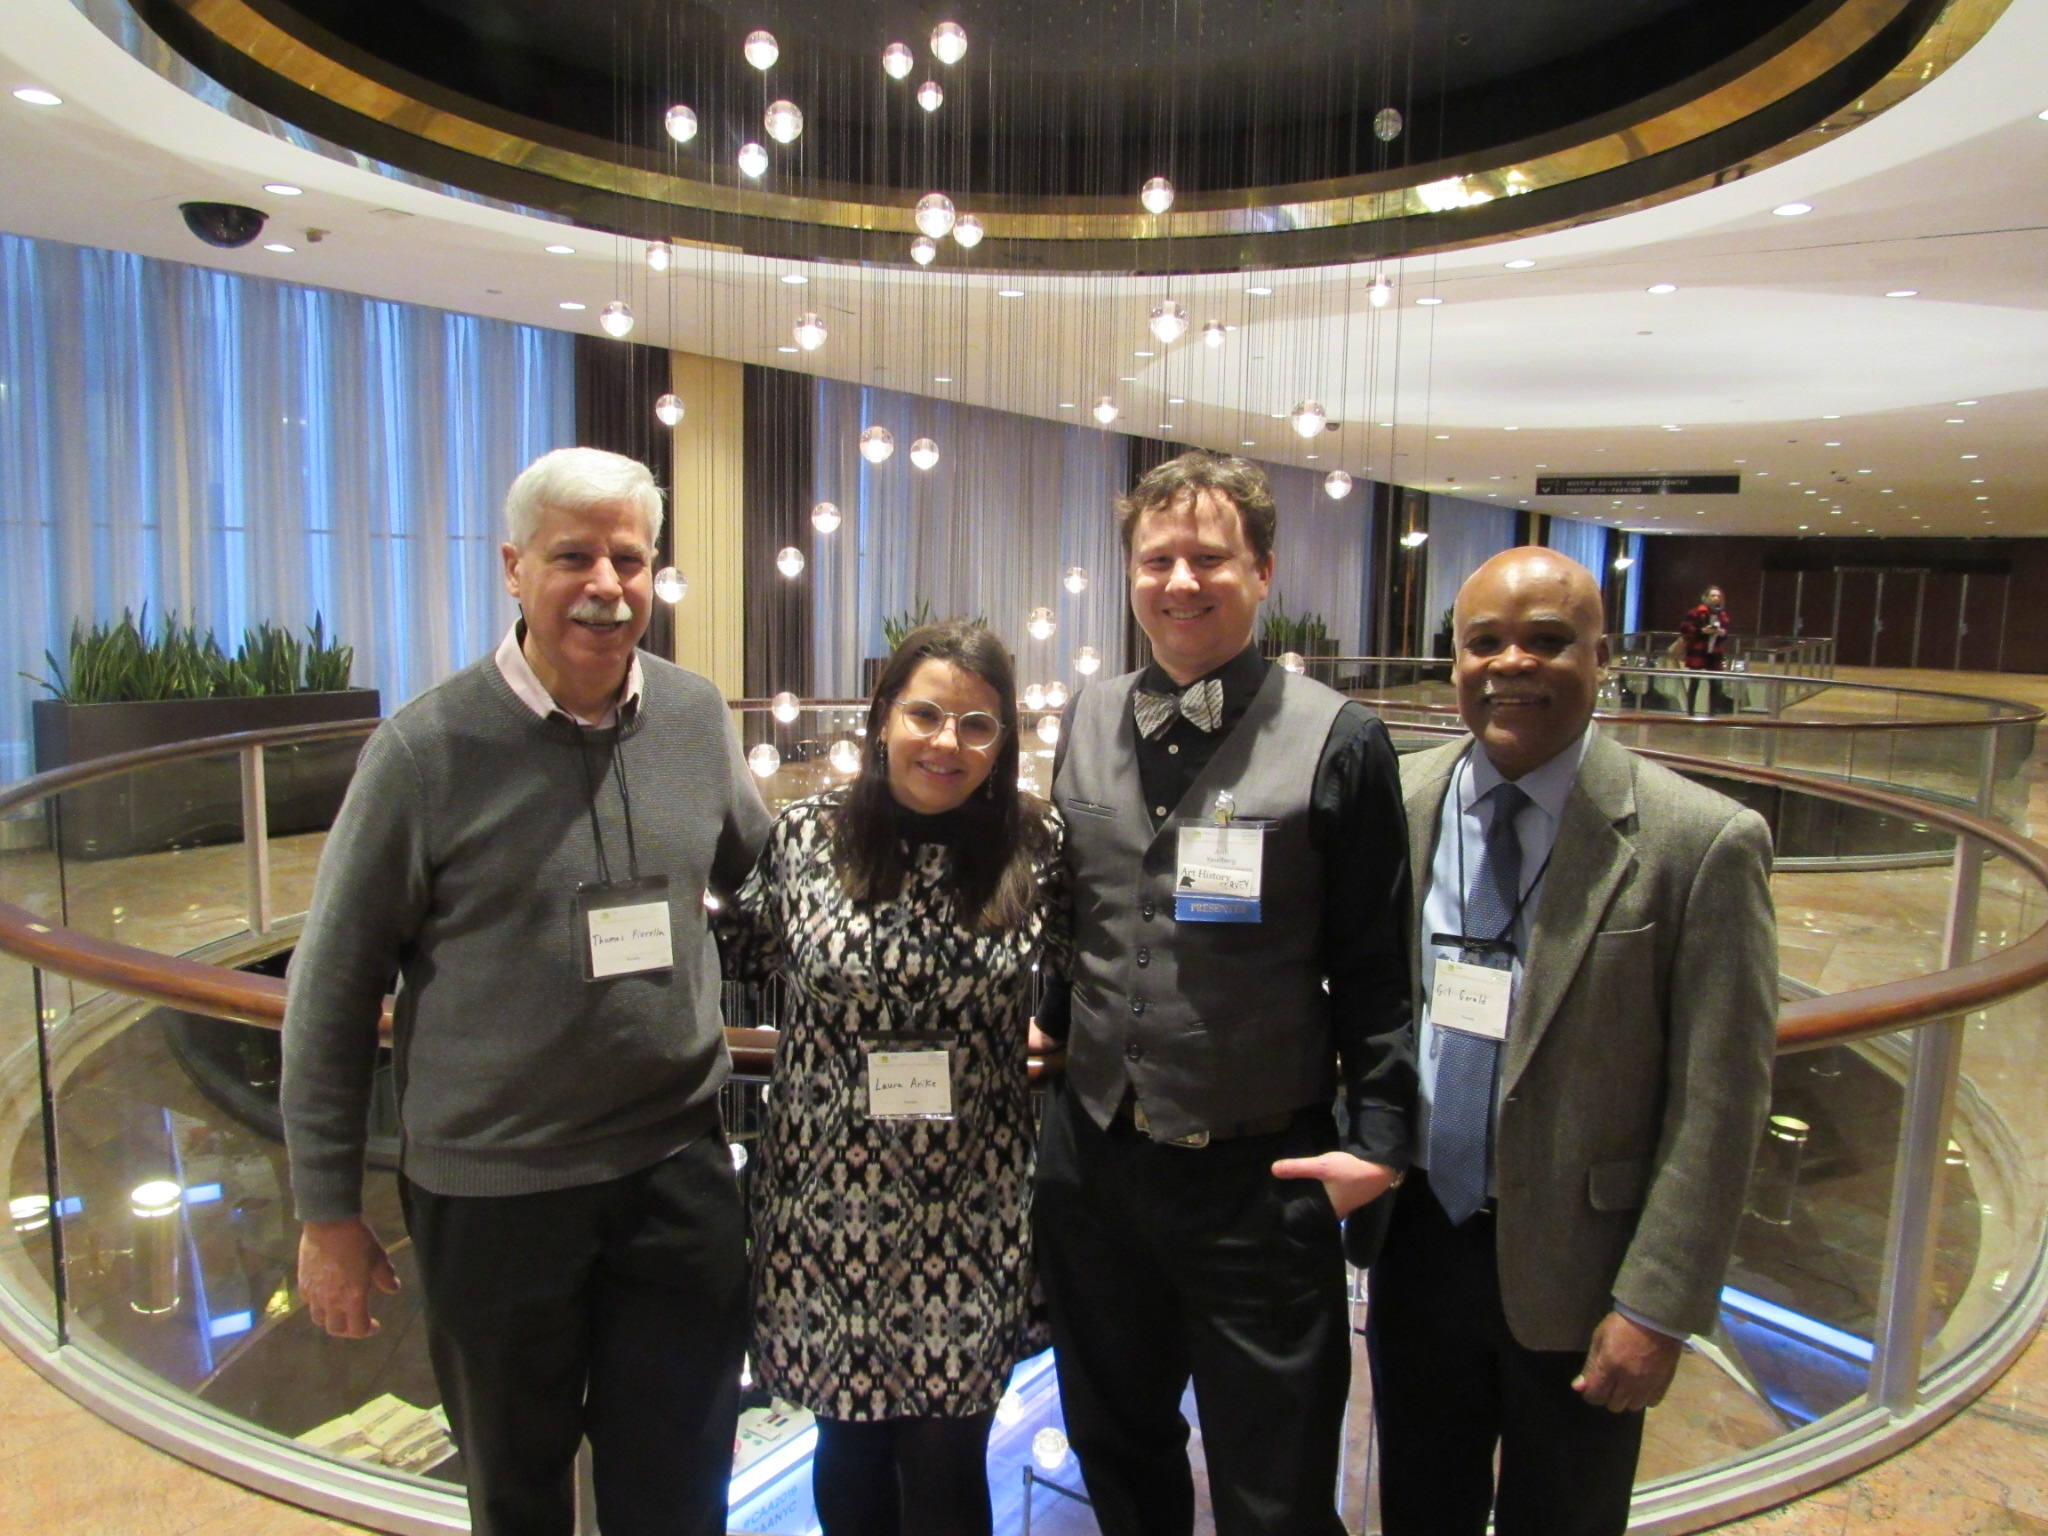 left to right, Tom Fiorella, Laura Arike, Josh Yavelberg, and Gil Gerald at the 107 Annual CAA Conference